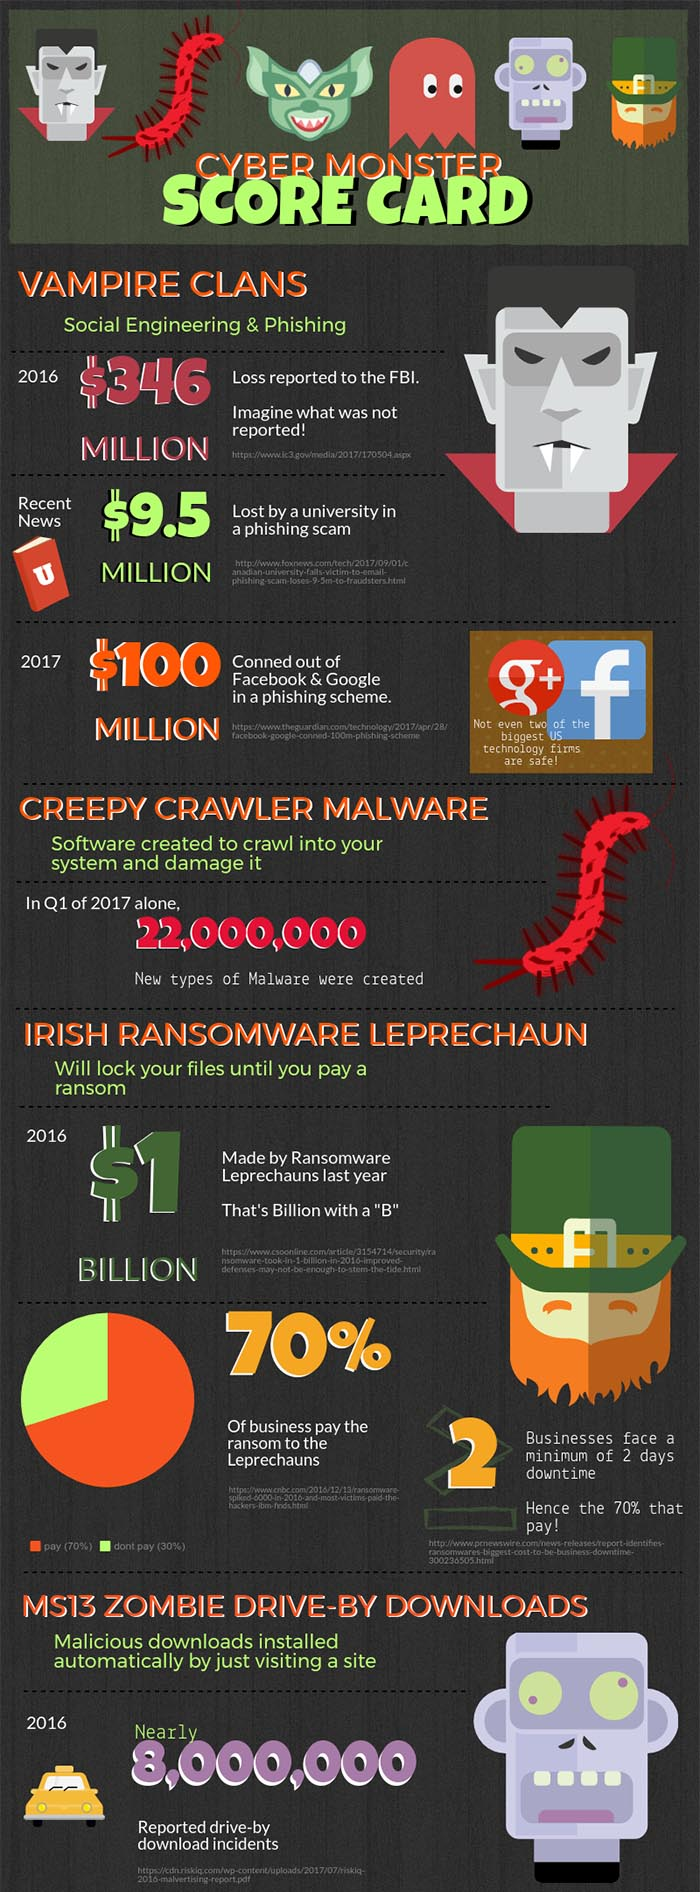 2017 cyber security statistics